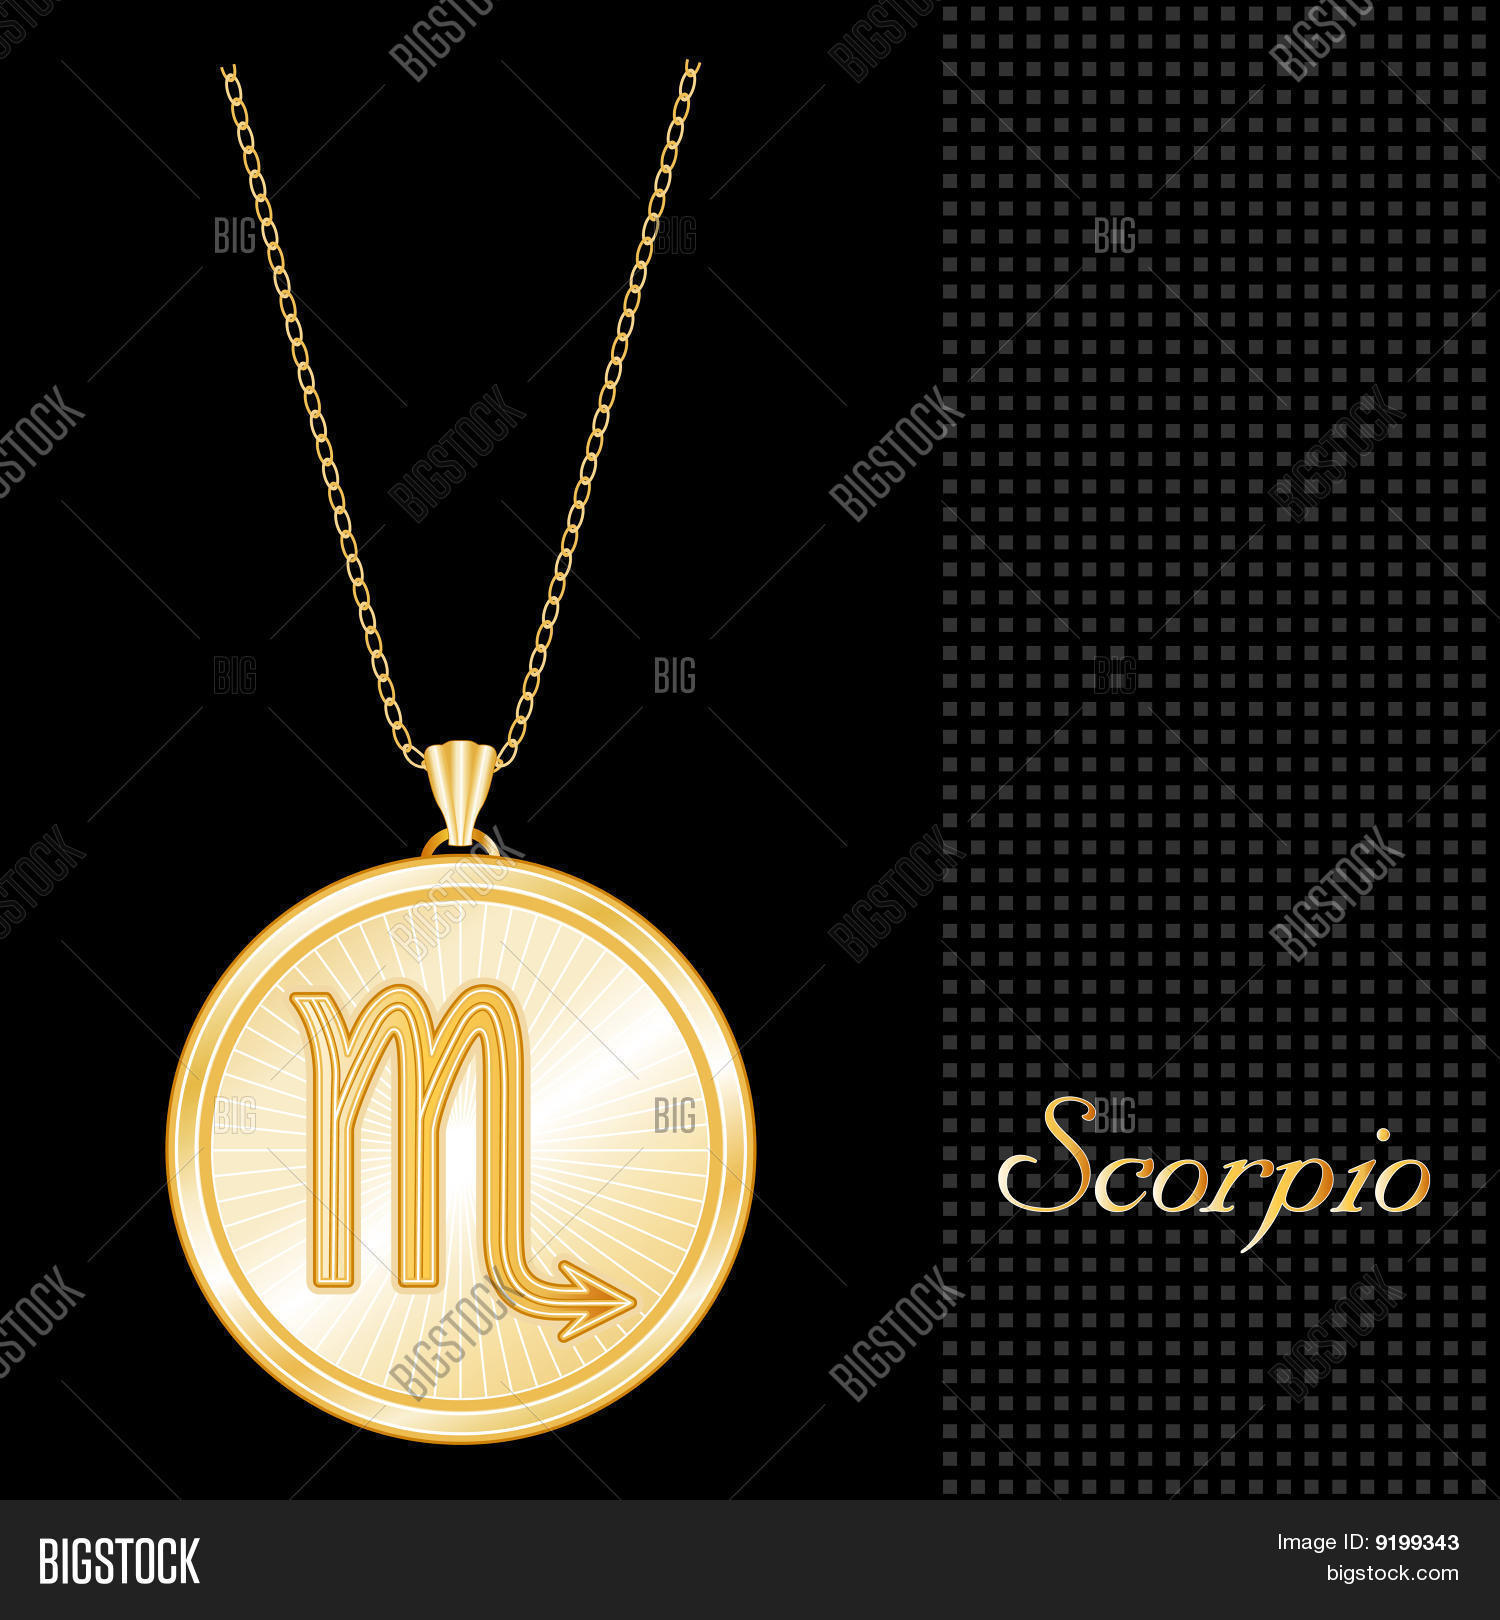 medallion game scorpion s tsn huge illustrated half scorpio according reason to status sports for on the announcers sinow first drake in raptors twitter